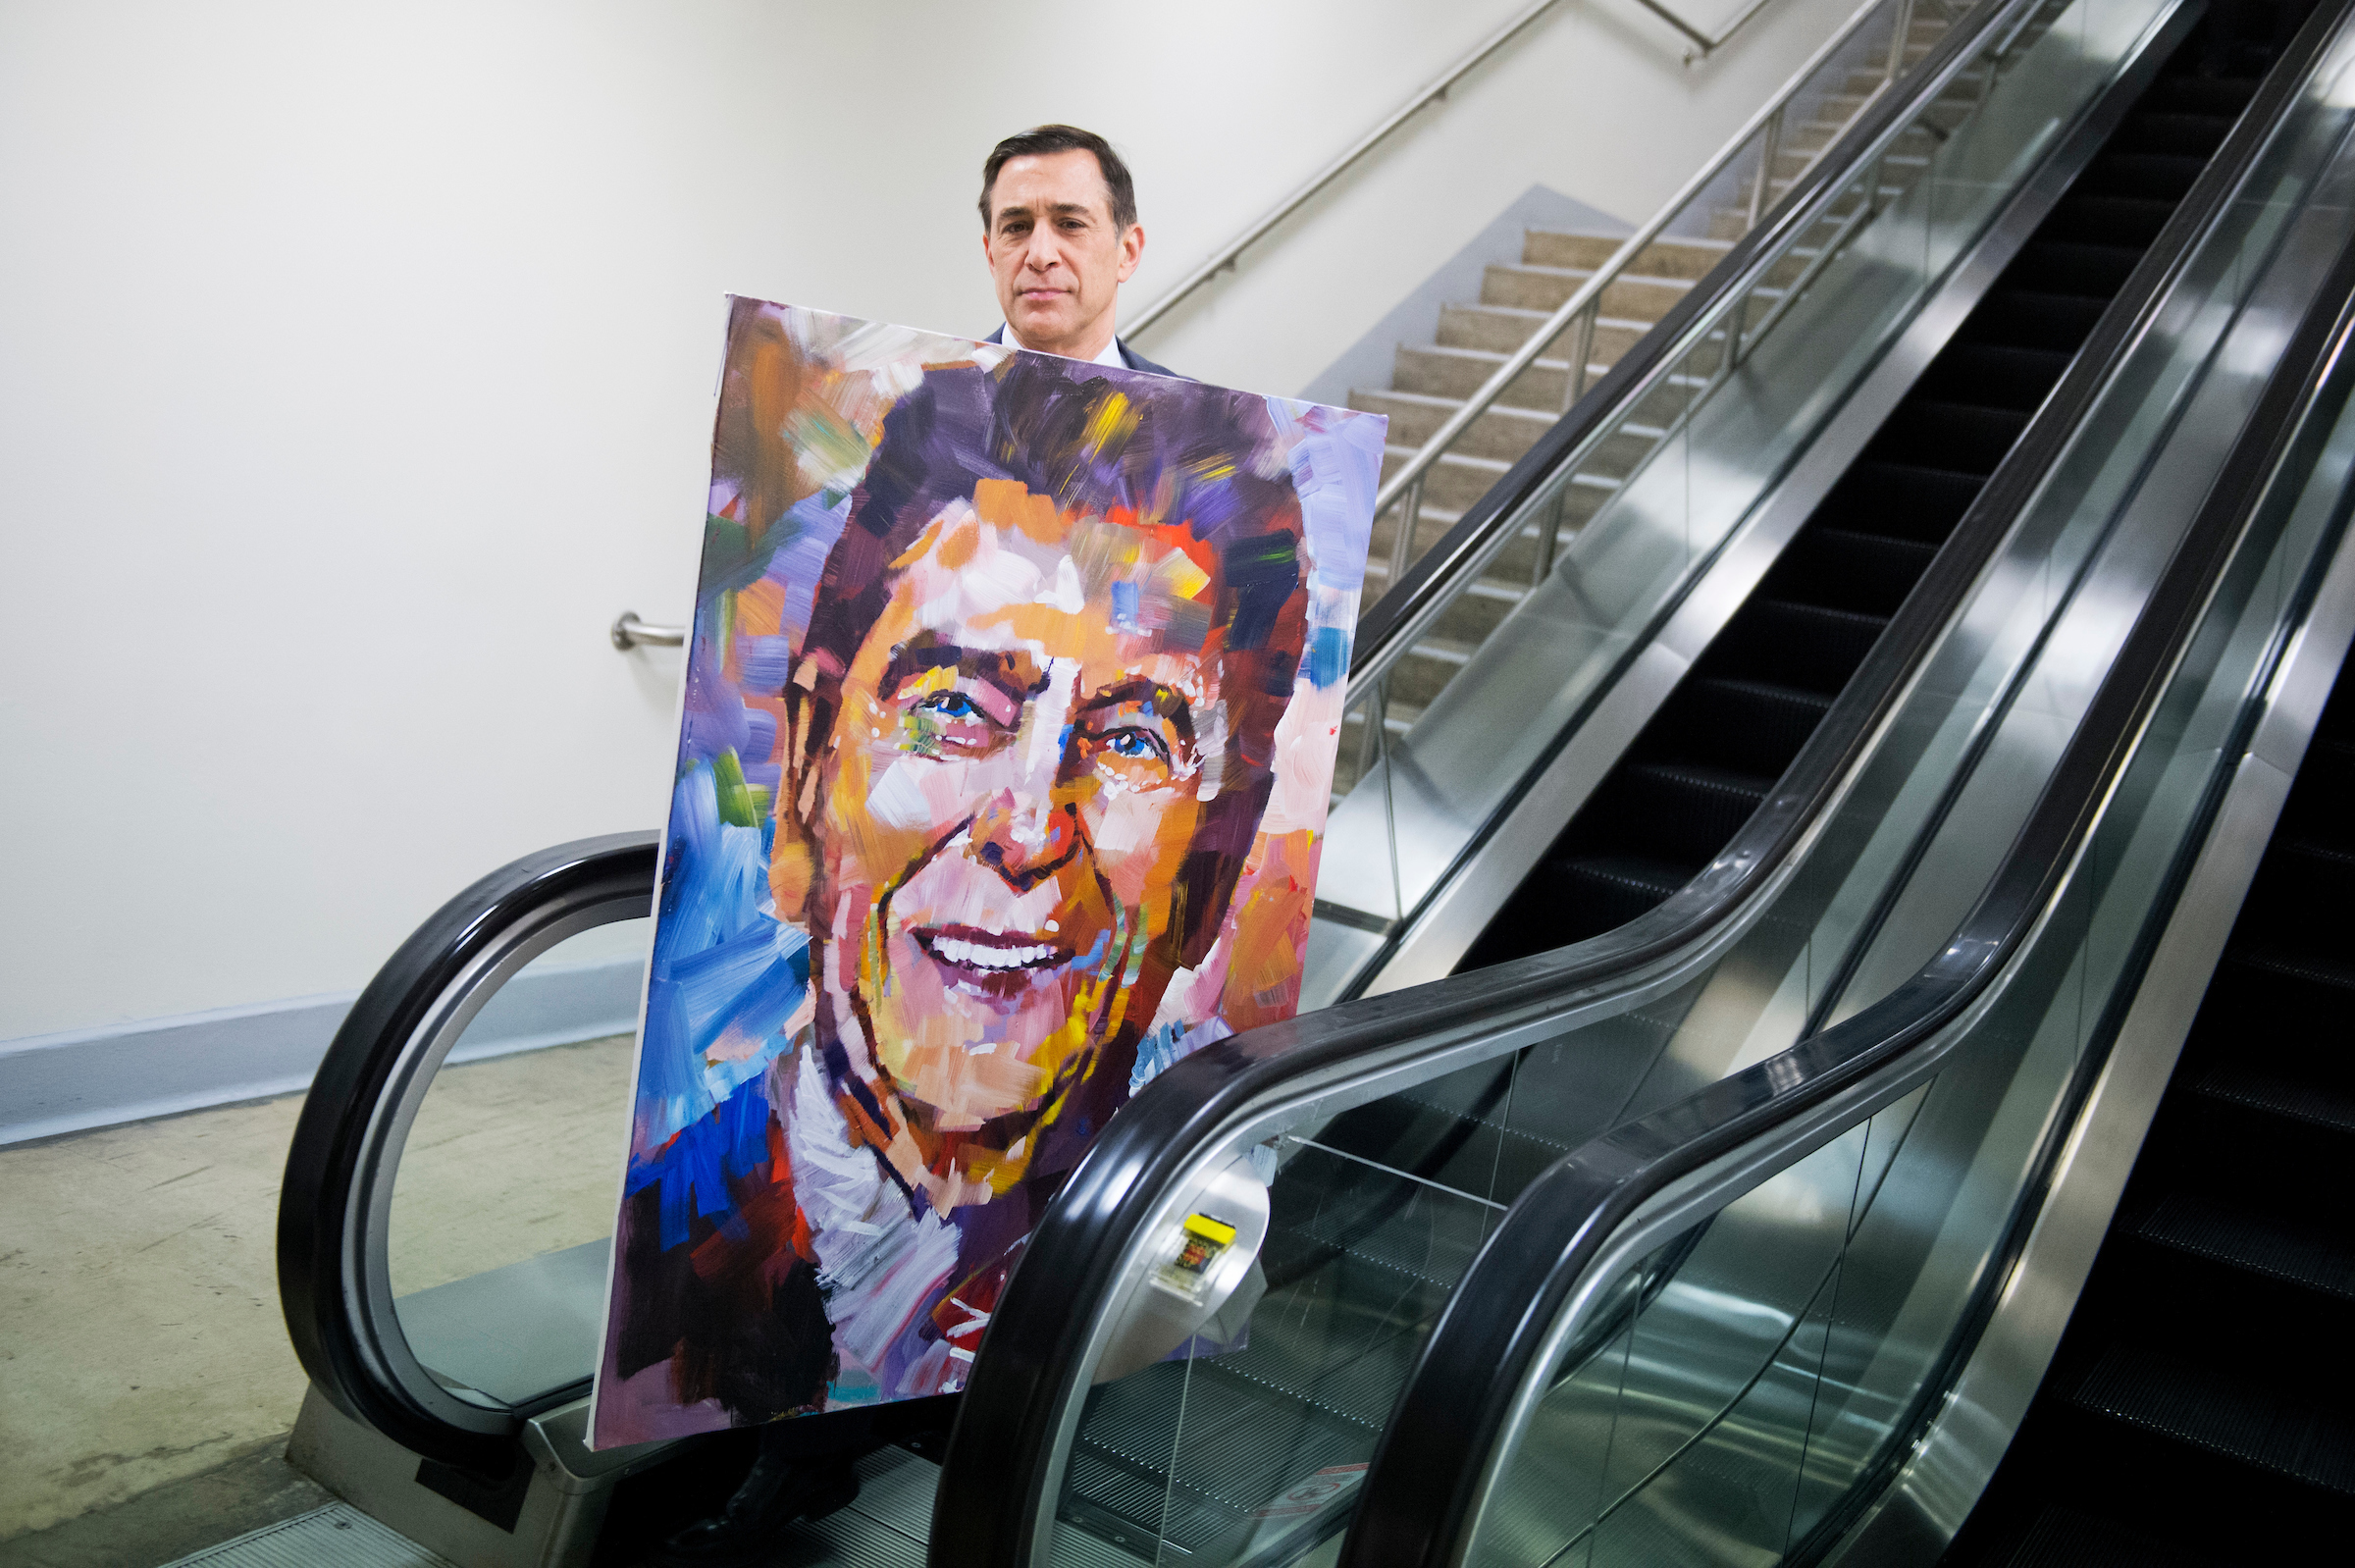 Rep. Darrell Issa, R-Calif., seen here with a painting of Ronald Reagan by artist Steve Penley, will retire at the end of this term. (Tom Williams/CQ Roll Call file photo)